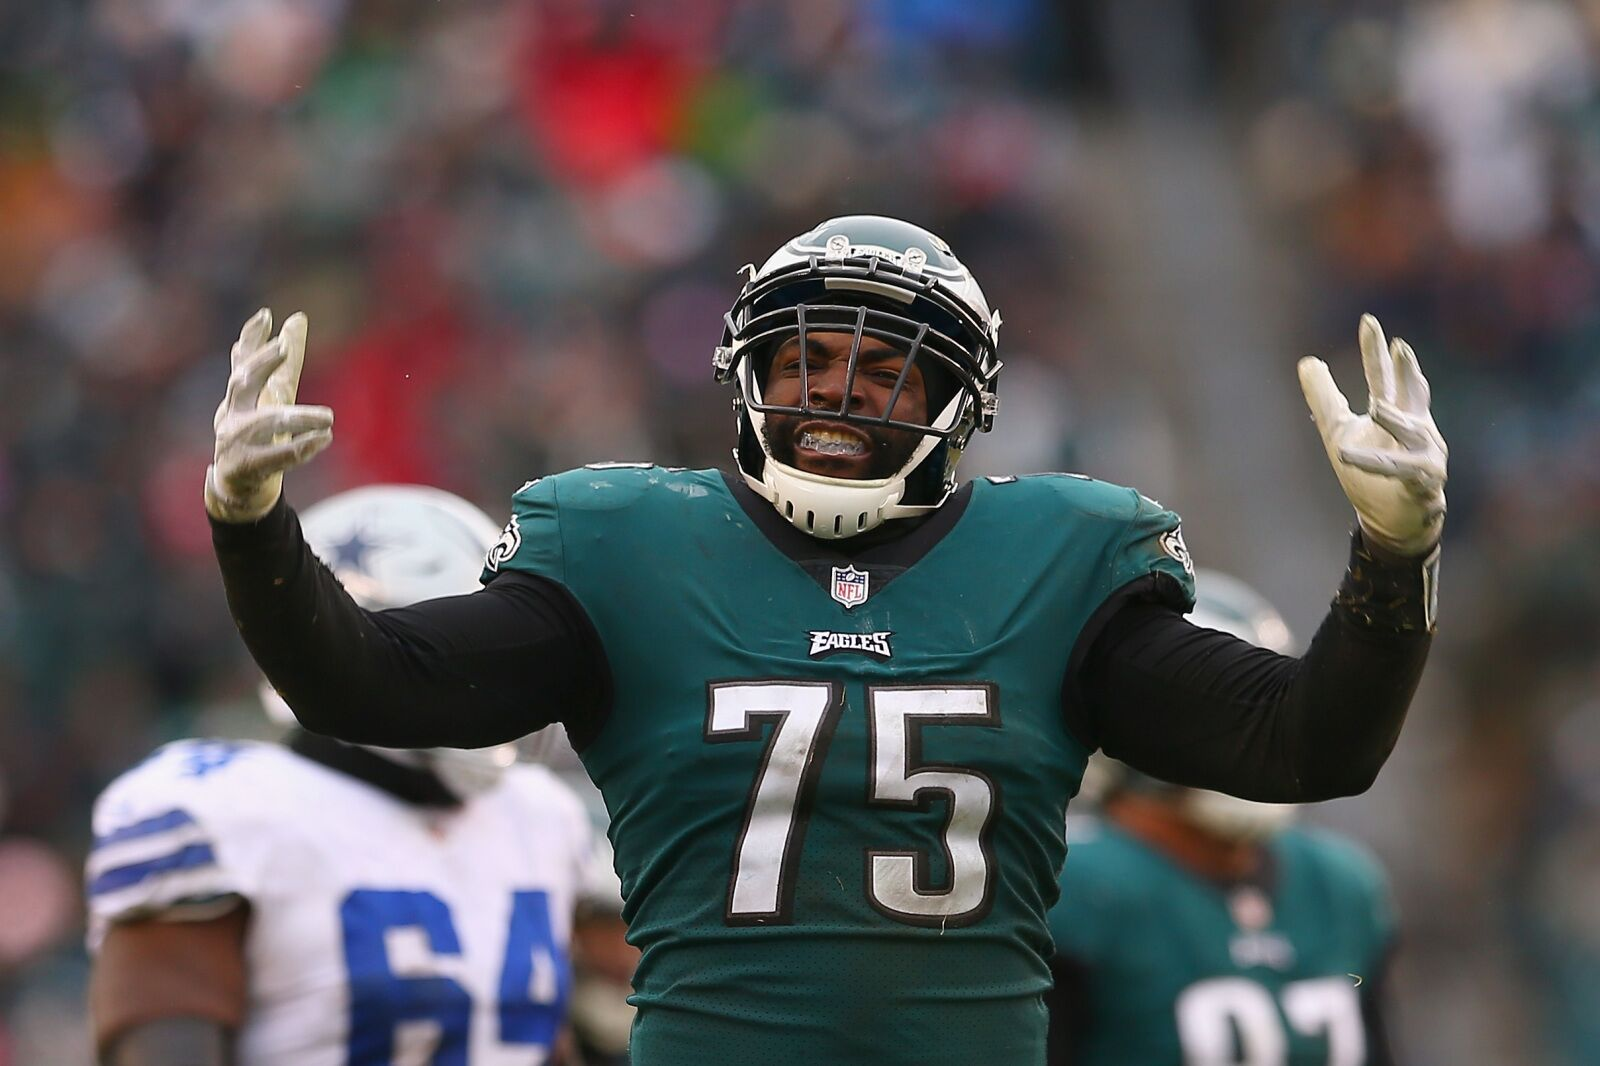 Eagles Rumor: Vinny Curry has an offer waiting for him in Philly